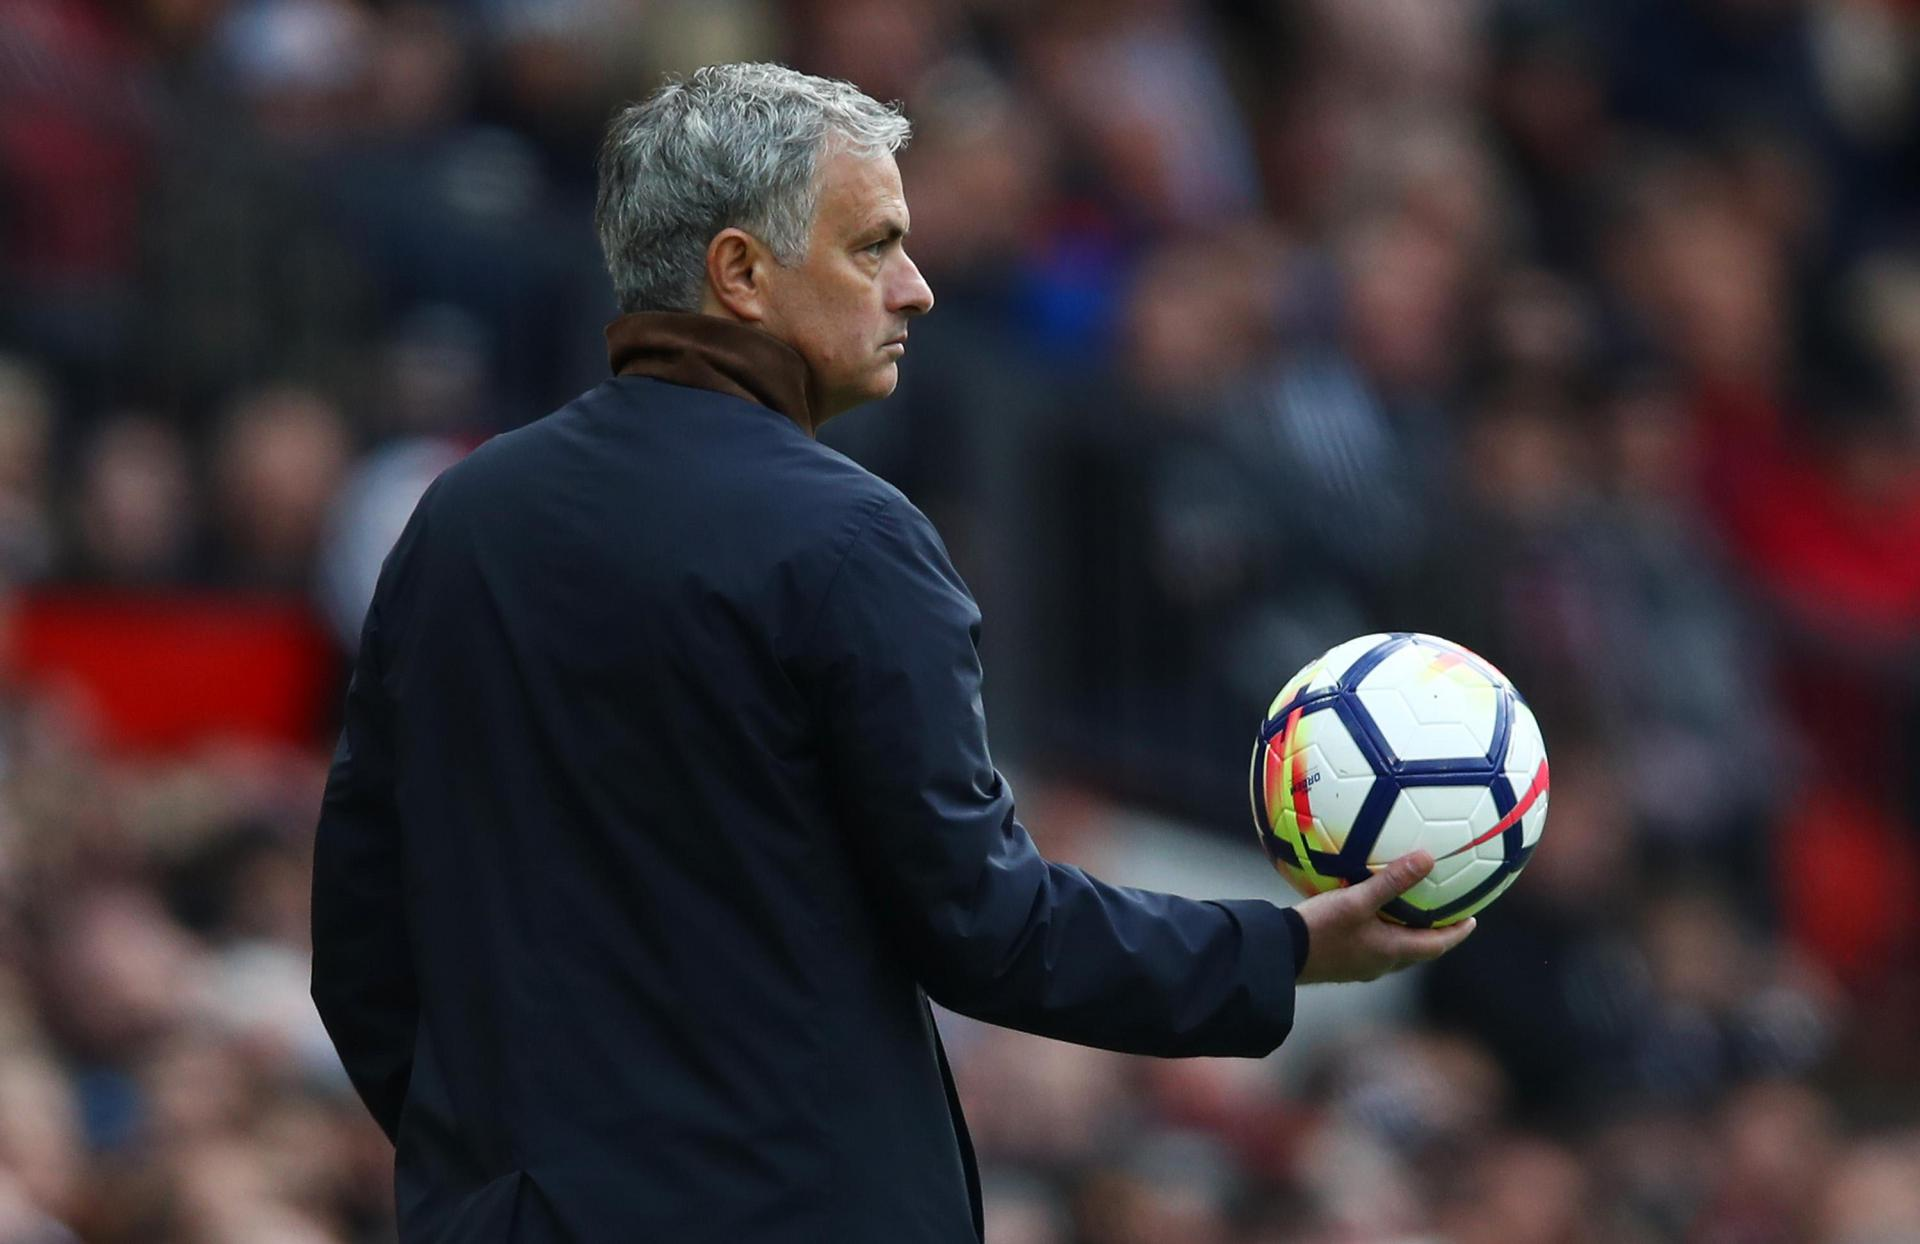 Jose Mourinho holding the ball on the touchline at Old Trafford